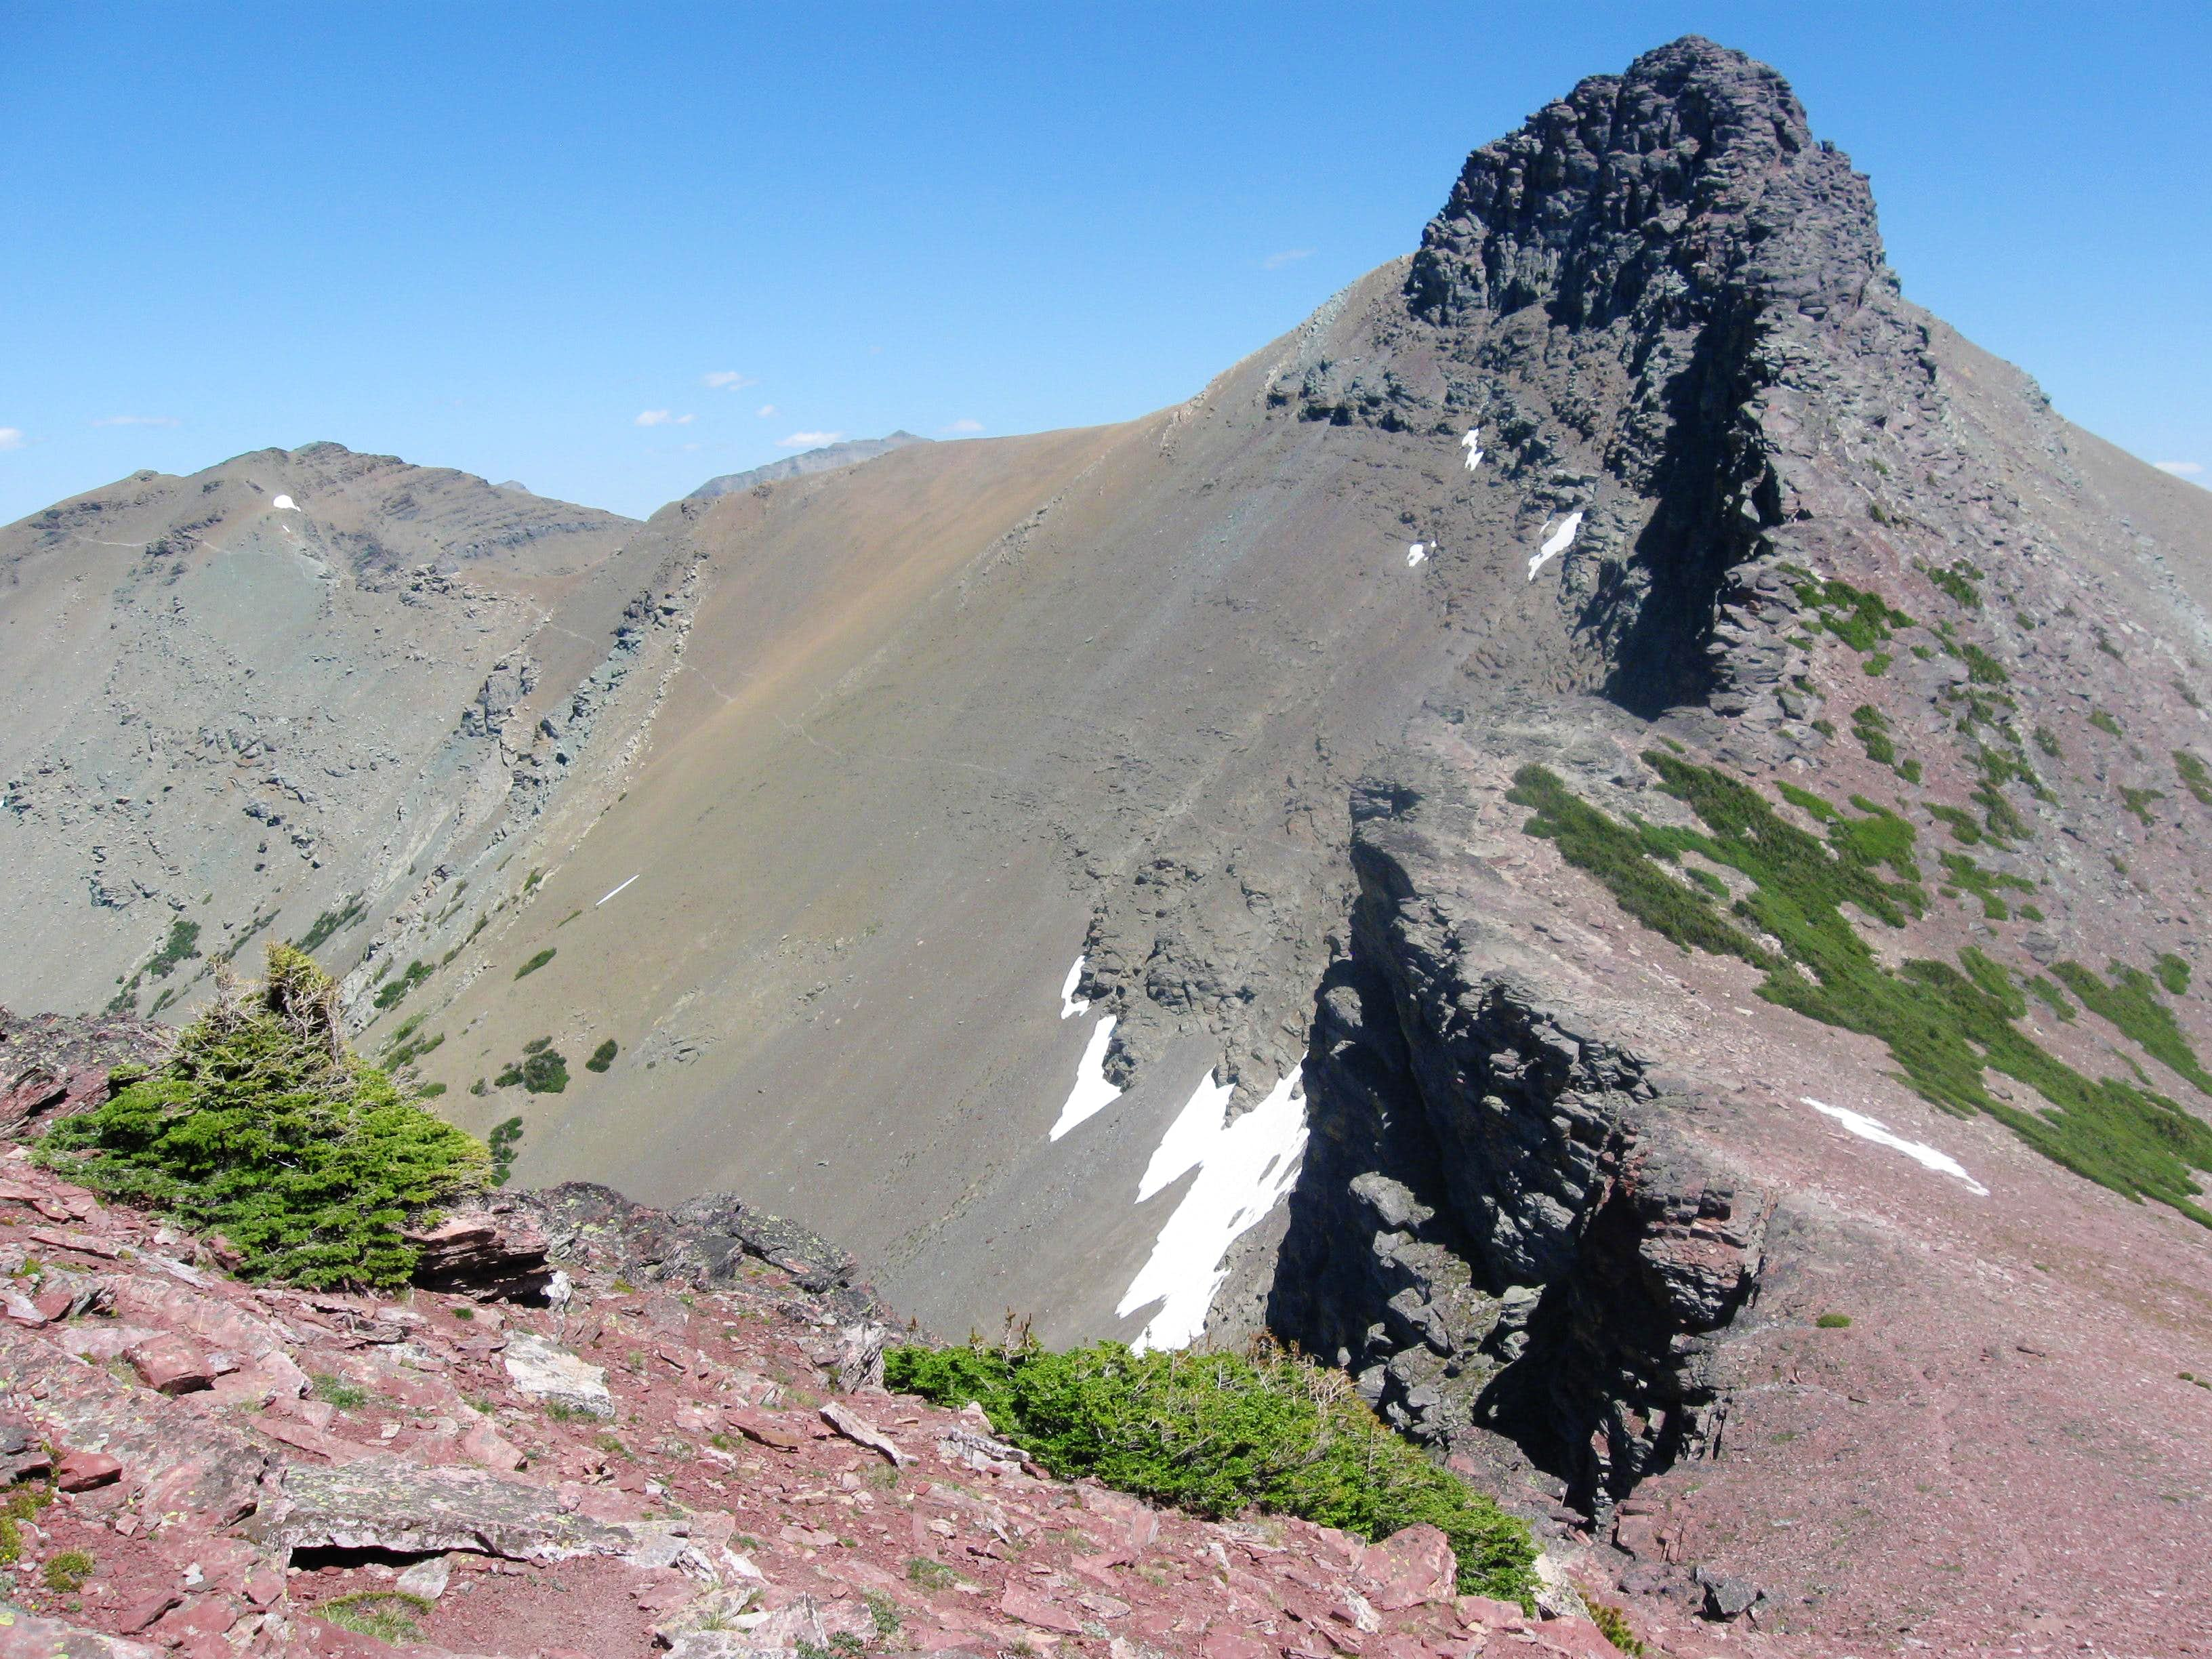 Medicine Owl Peak, Peak 8625 & Kakitos Mountain - 6.26.2015